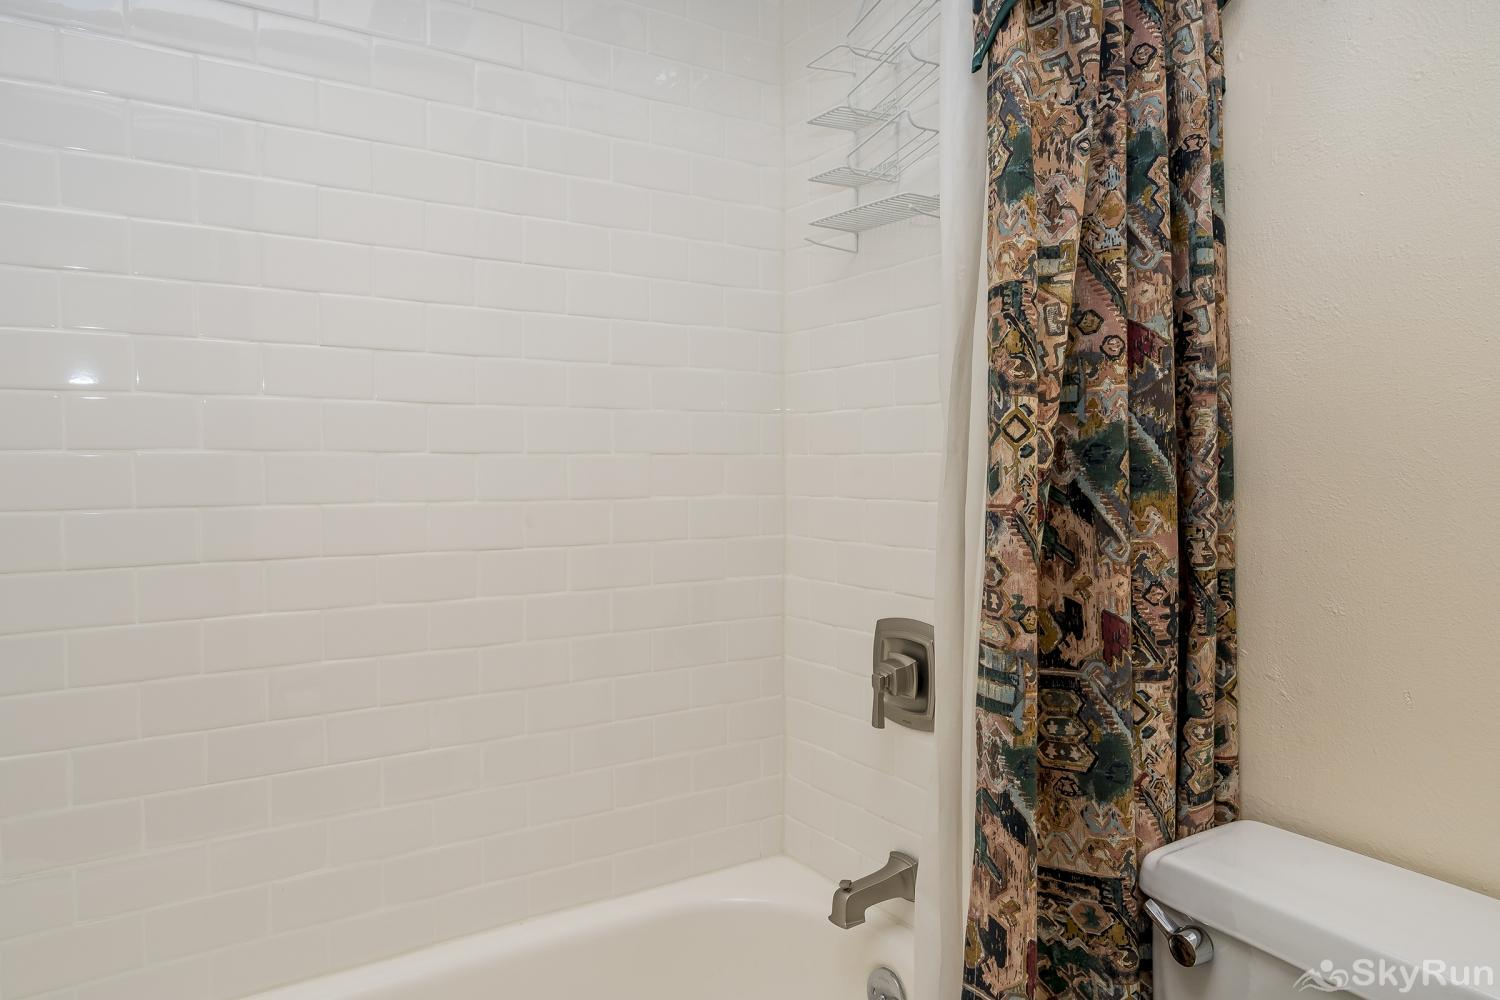 Herbage Townhomes E1 Newly remodeled bathroom with a tub/shower combo